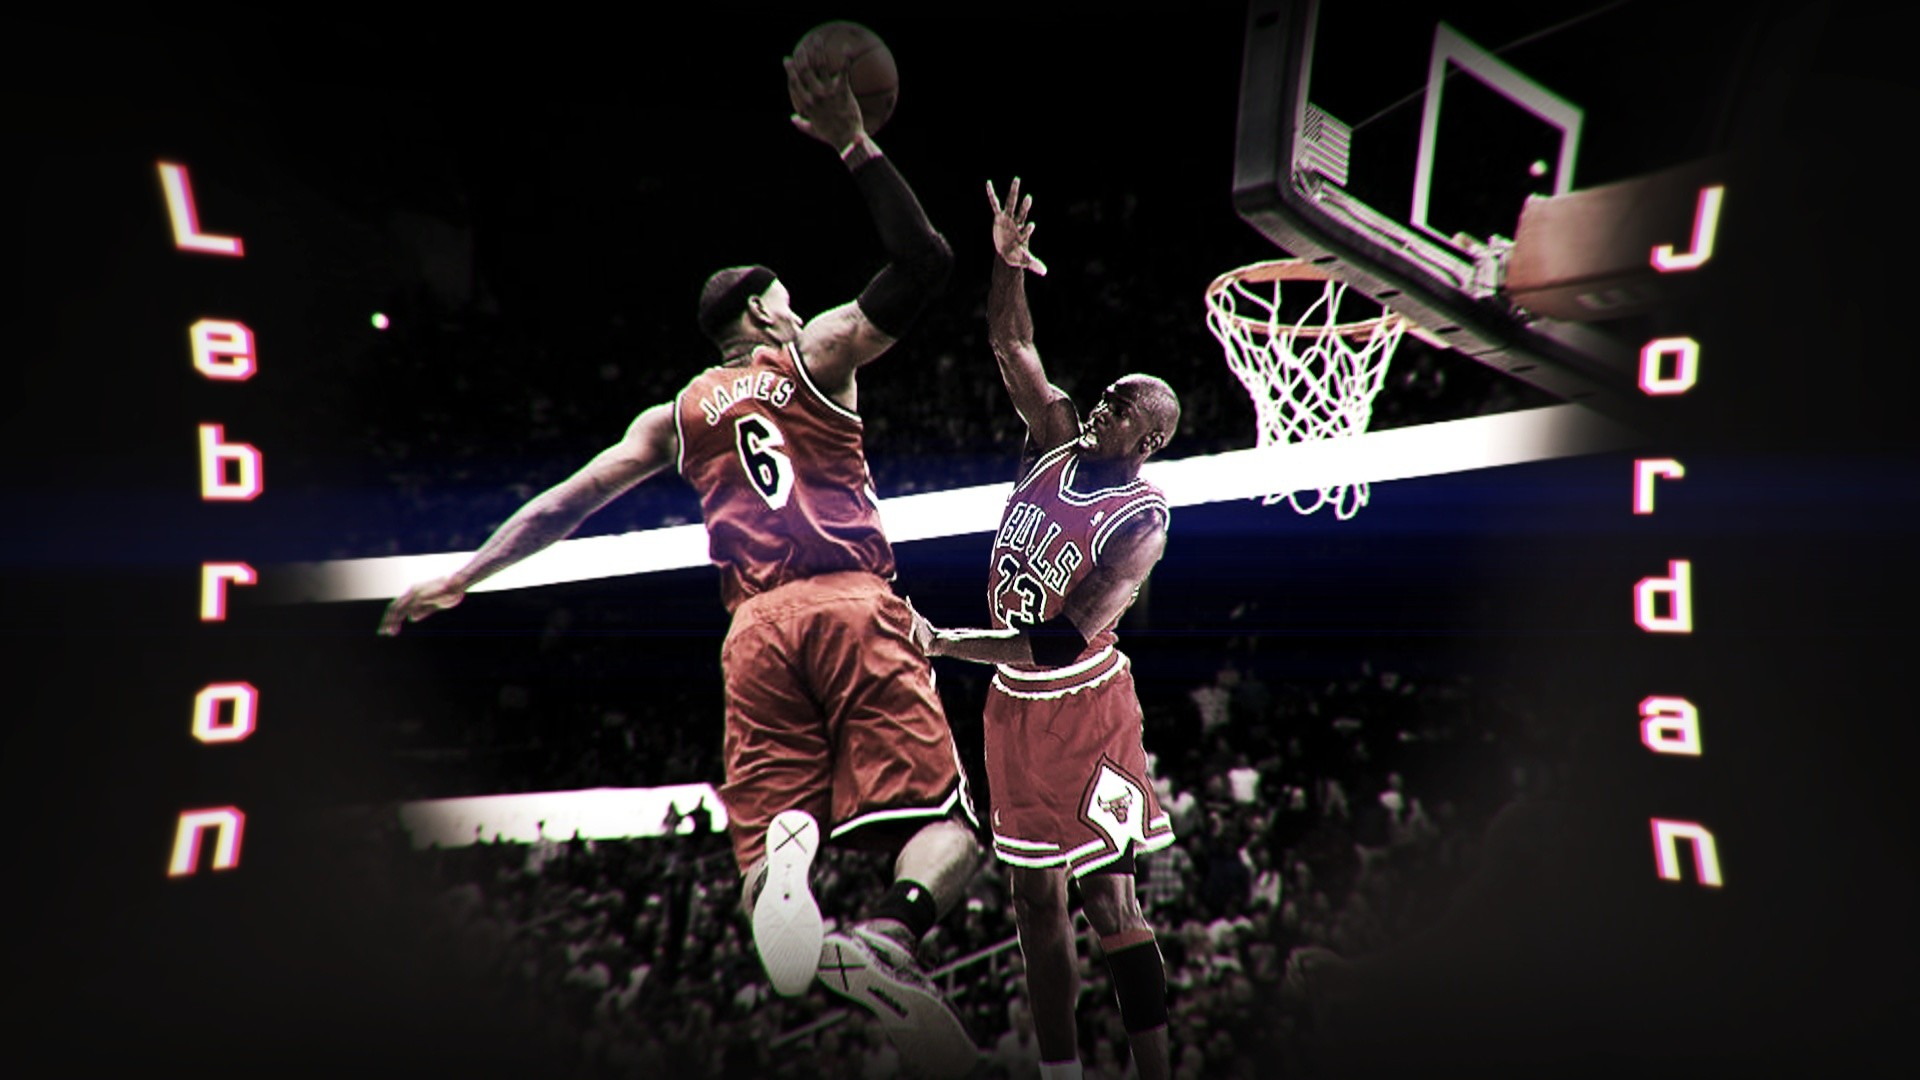 Hd Michael Jordan Wallpaper 76 Images